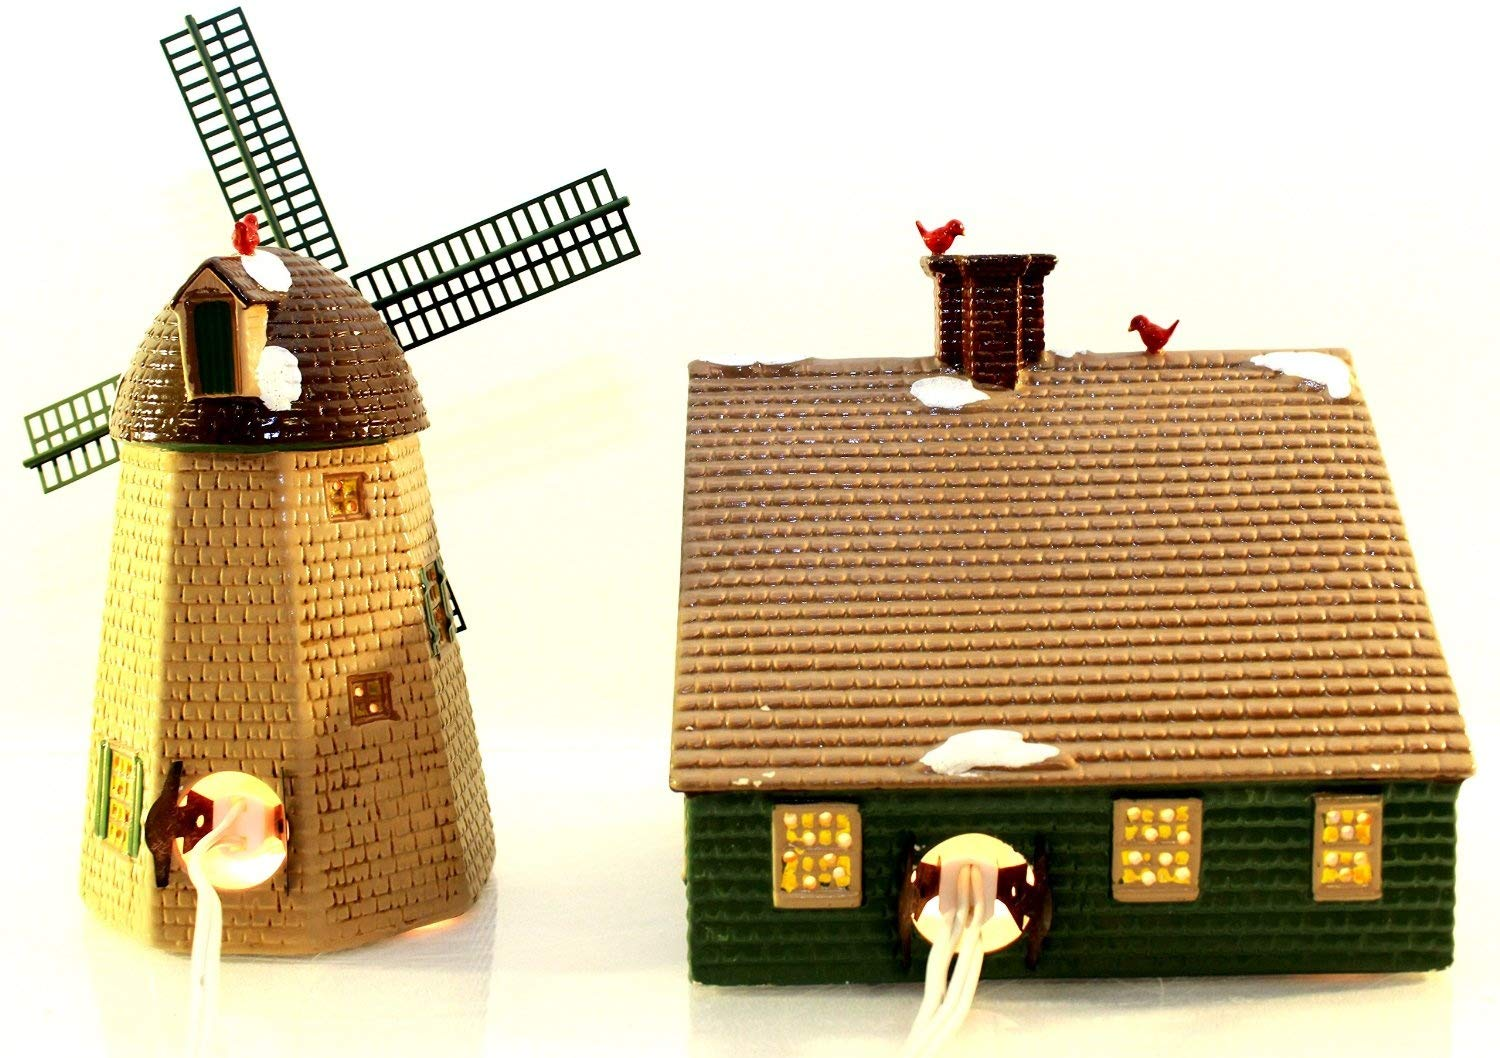 Department 56 The Original Snow Village Home Sweet Home House & Windmill #51268 by Department 56 (Image #2)